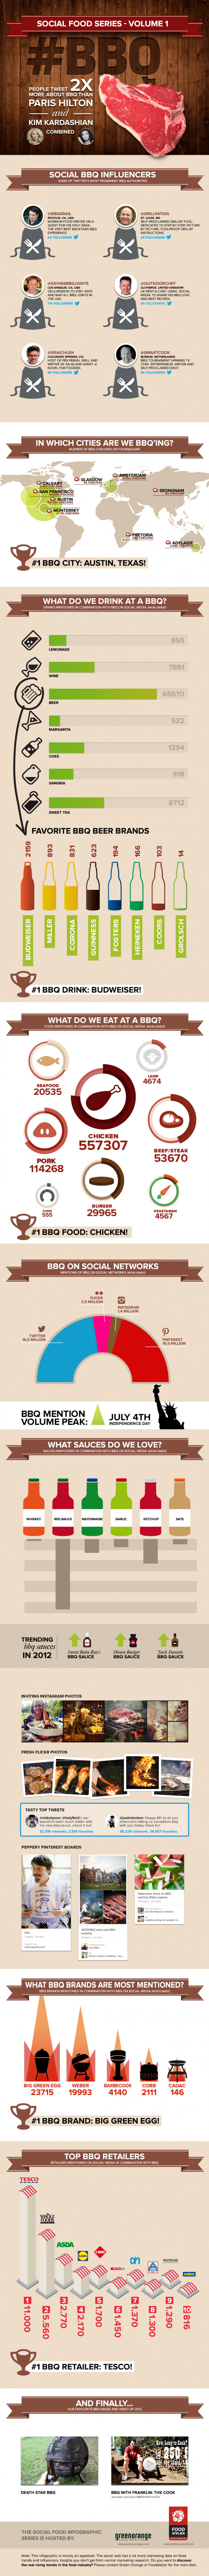 Social Food Series volume 1: #BBQ